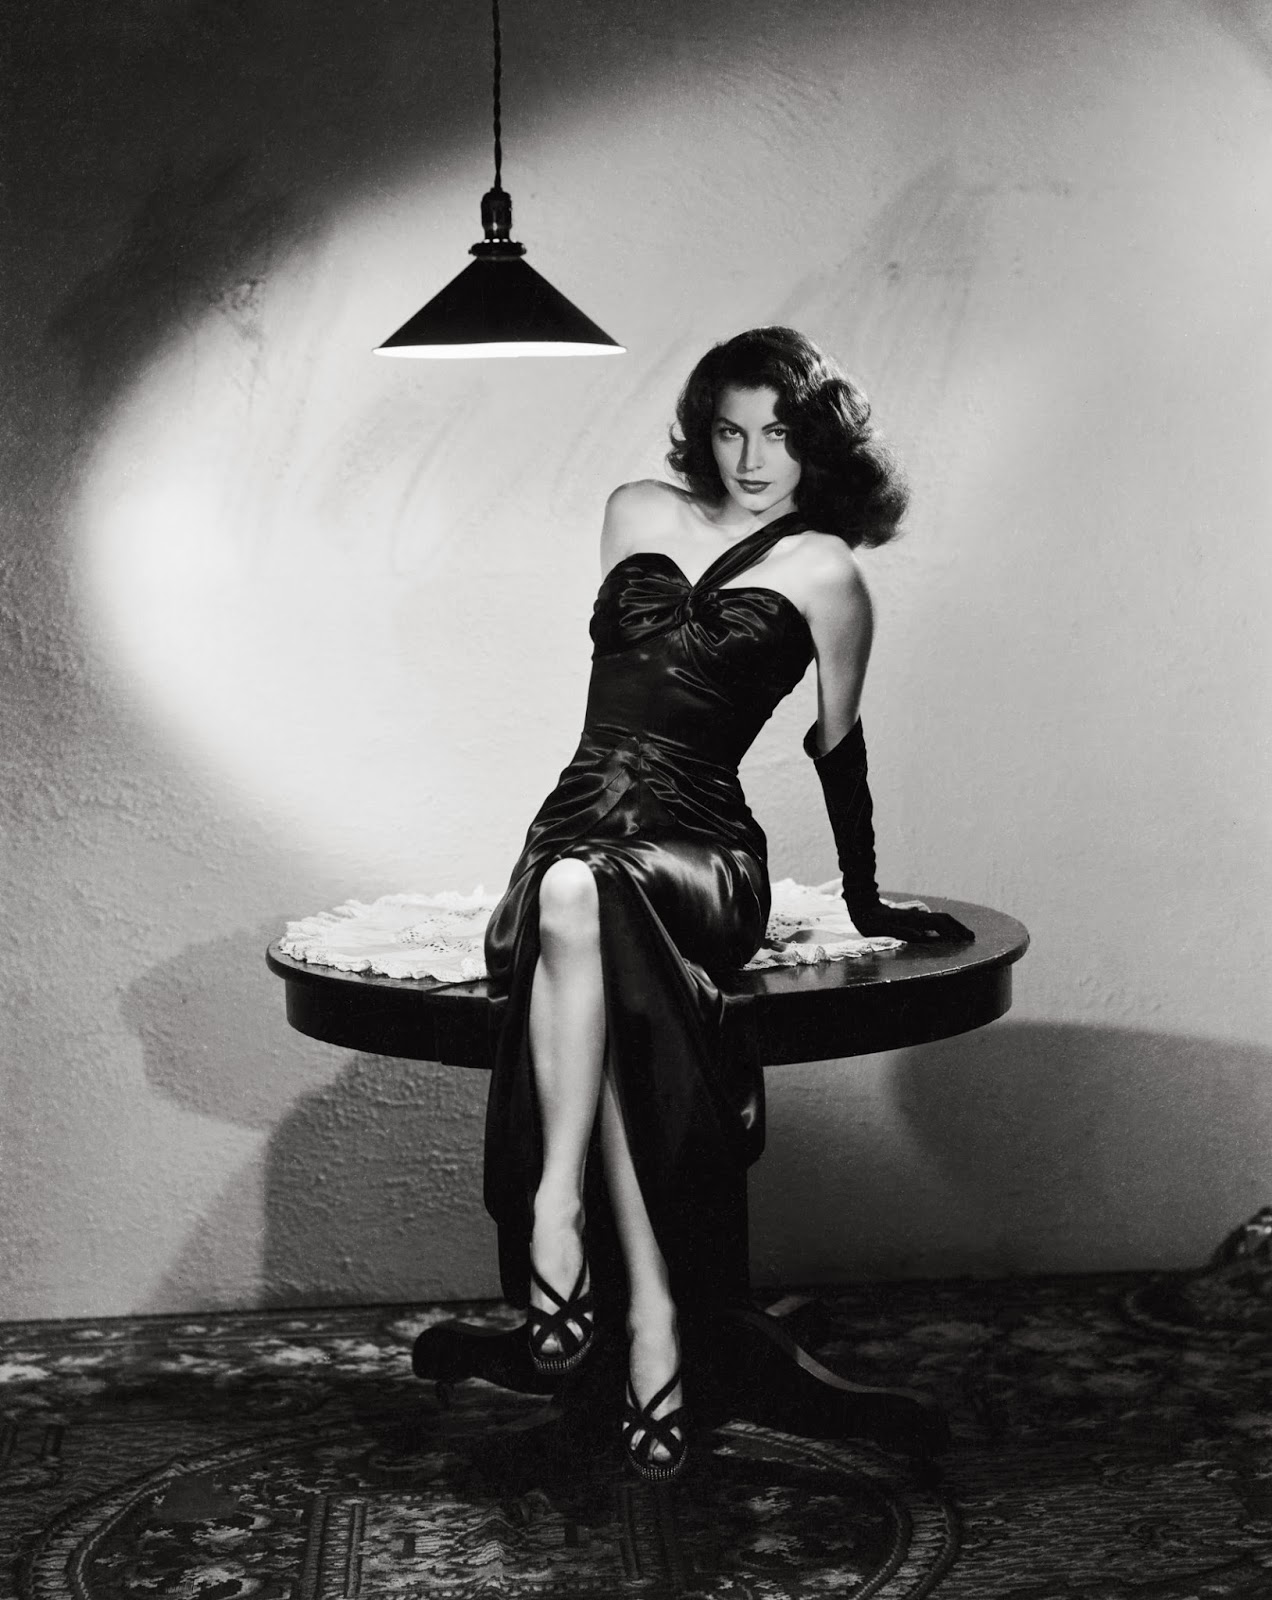 Ava Gardner as a femme fatale in the film, The Killers